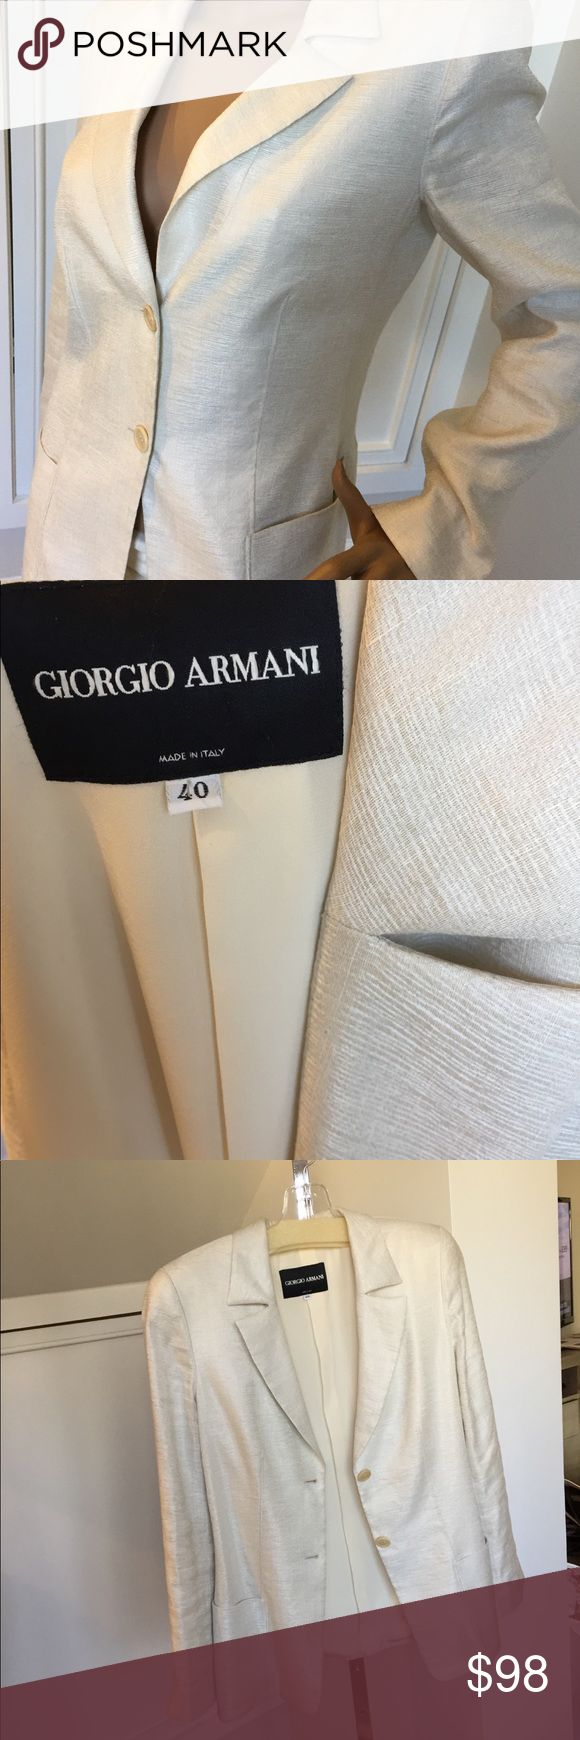 Georgia Armani jacket ivory size 40 Italian Very Gently Worn only a few times but excellent condition Georgio Armani Jackets & Coats